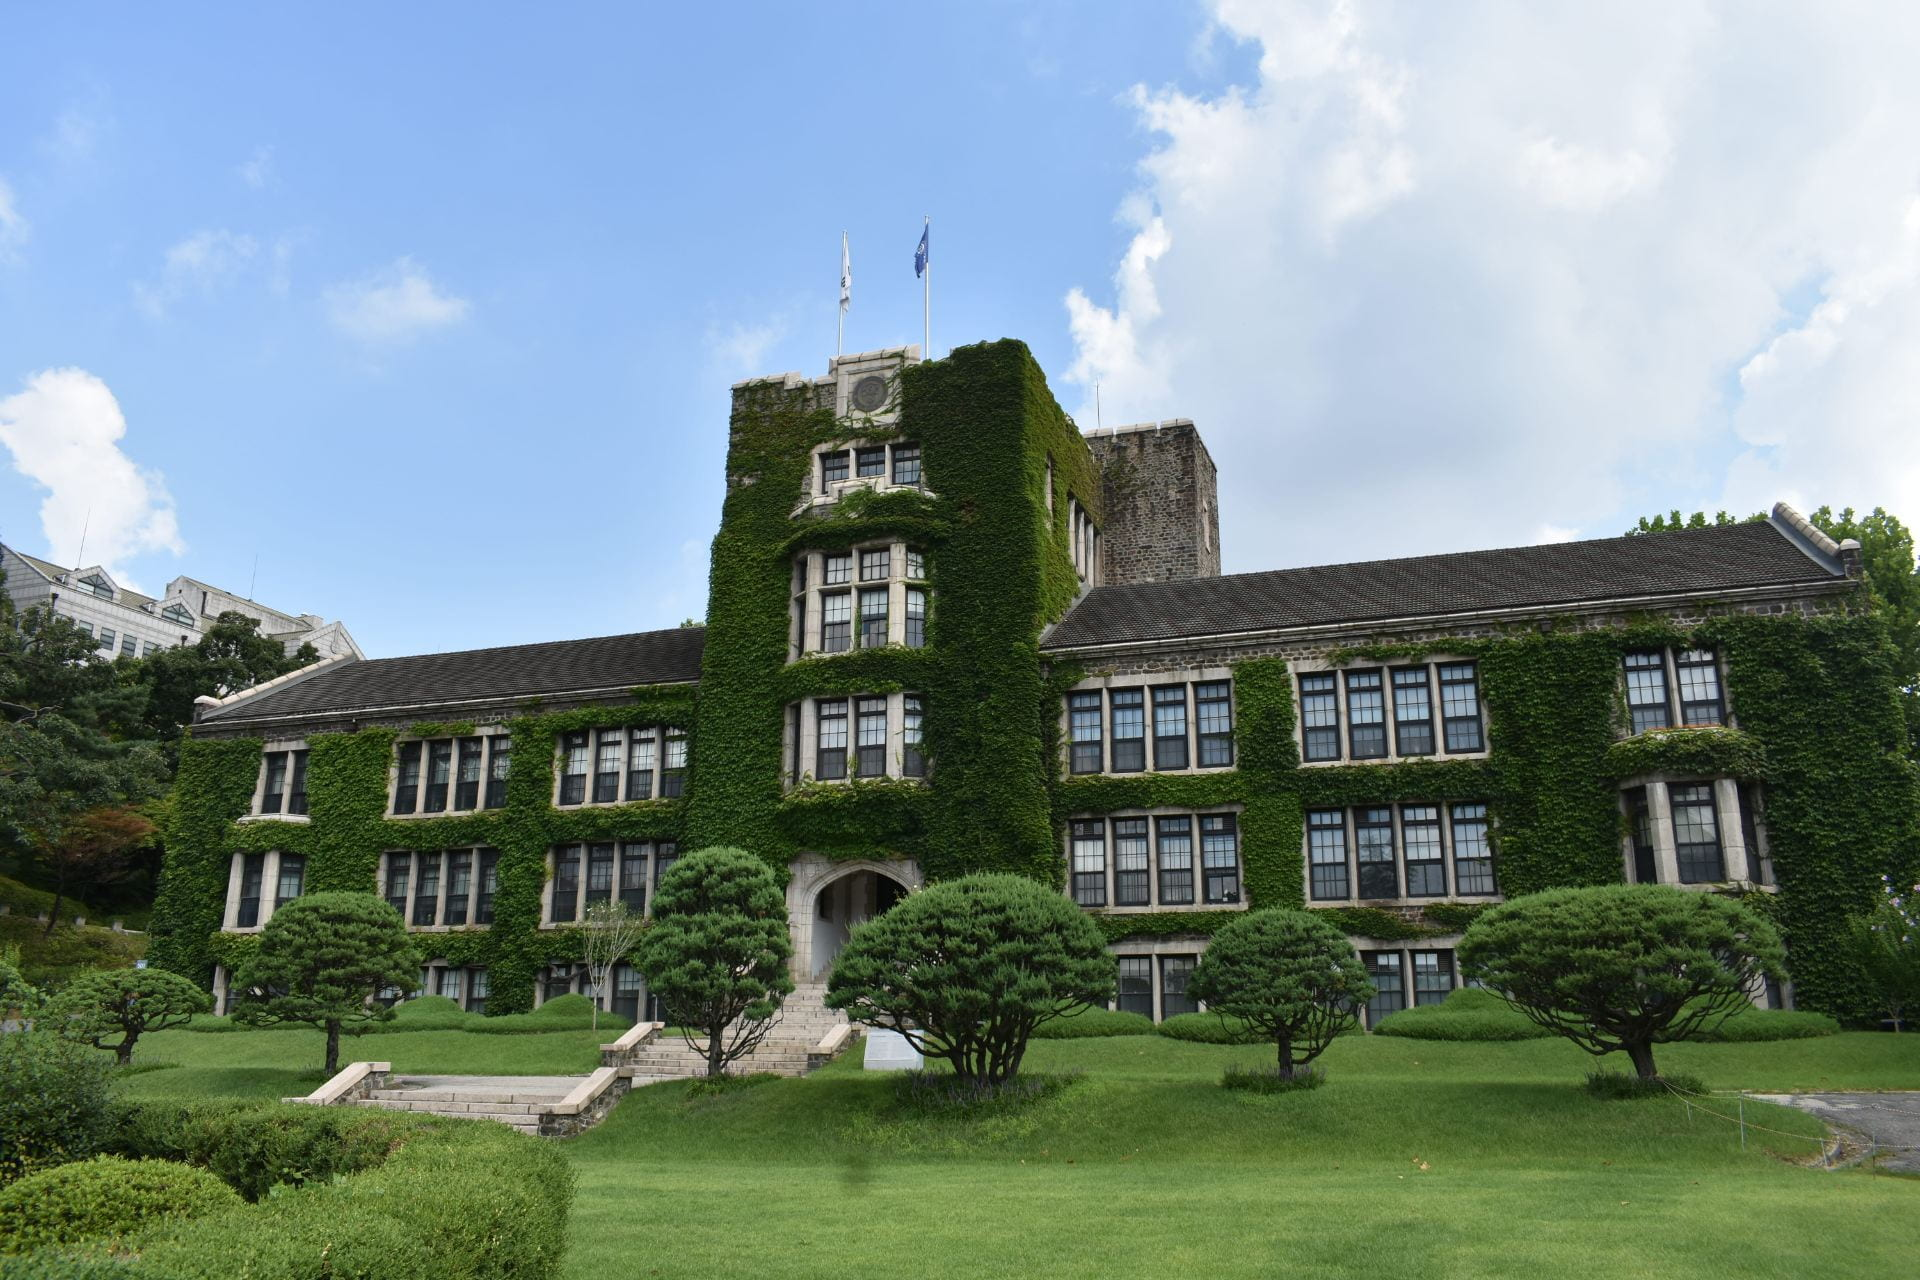 Yonsei University's campus